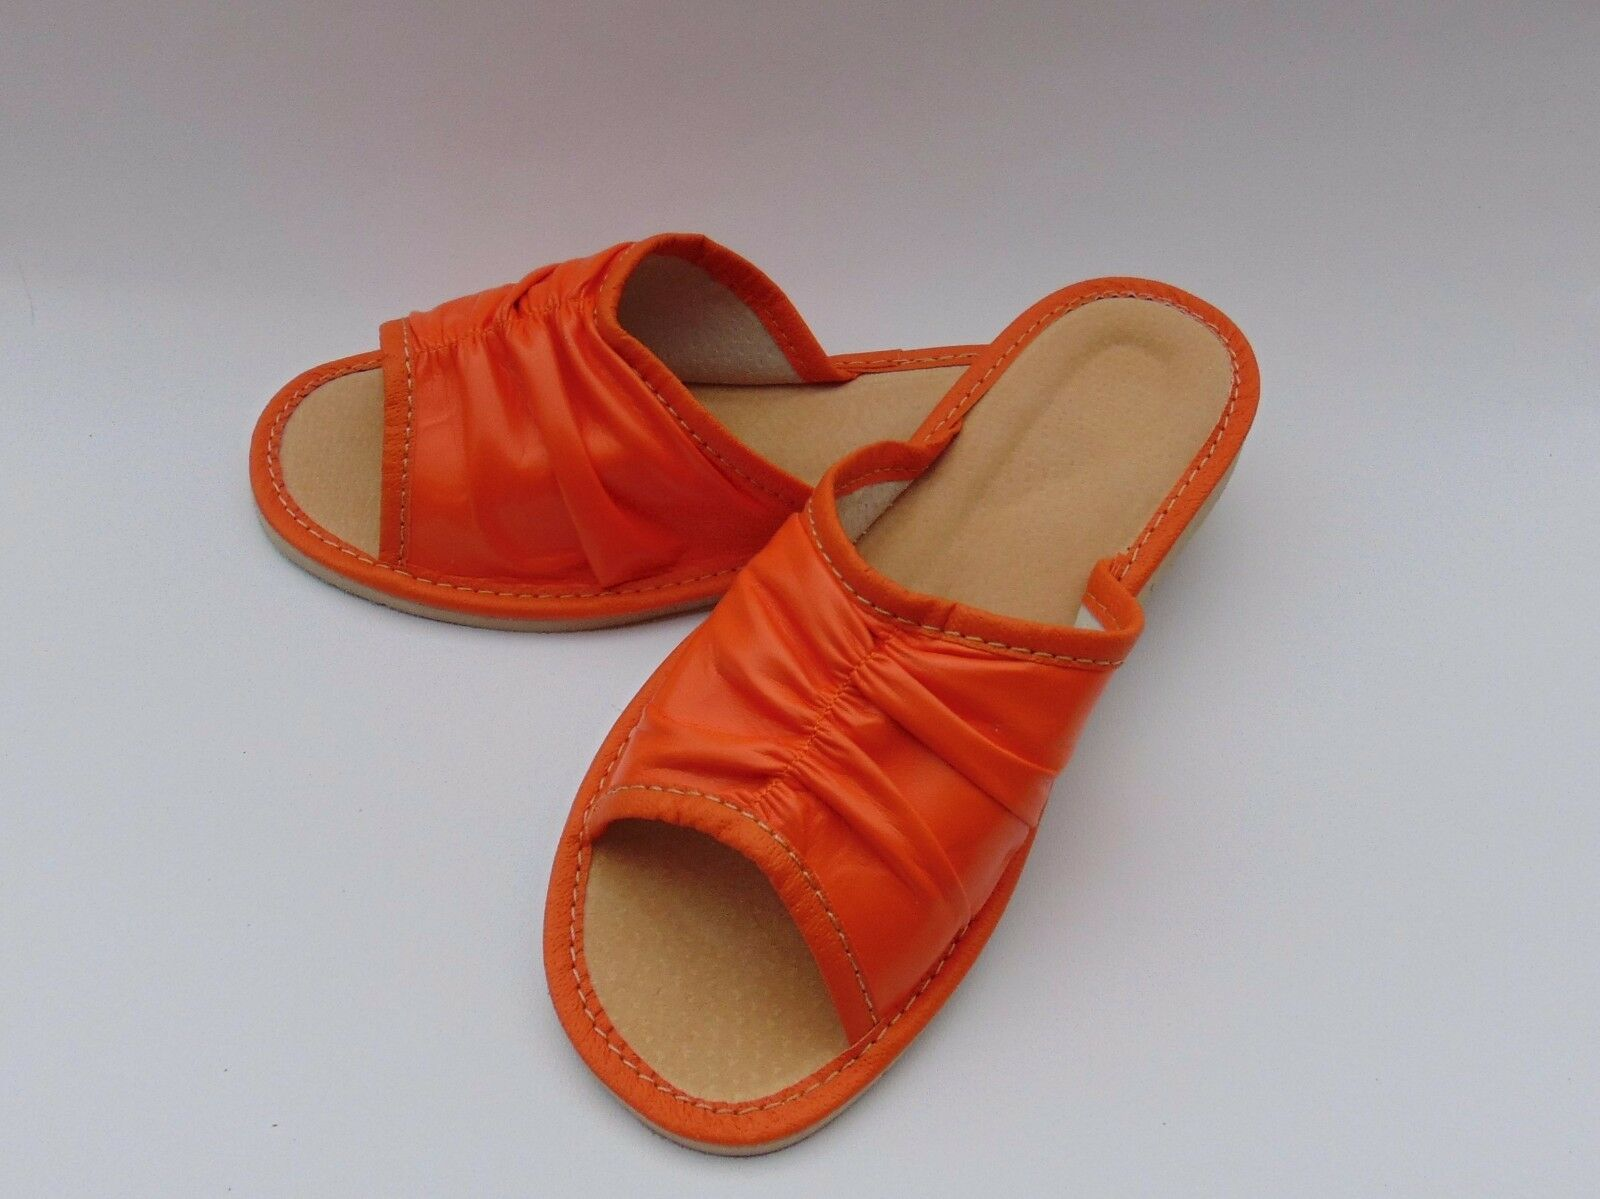 Ladies soft MADE leather slippers*ORIGINAL EU HAND MADE soft PRODUCT*sizes 3,4, 5,6,7,8 1db762